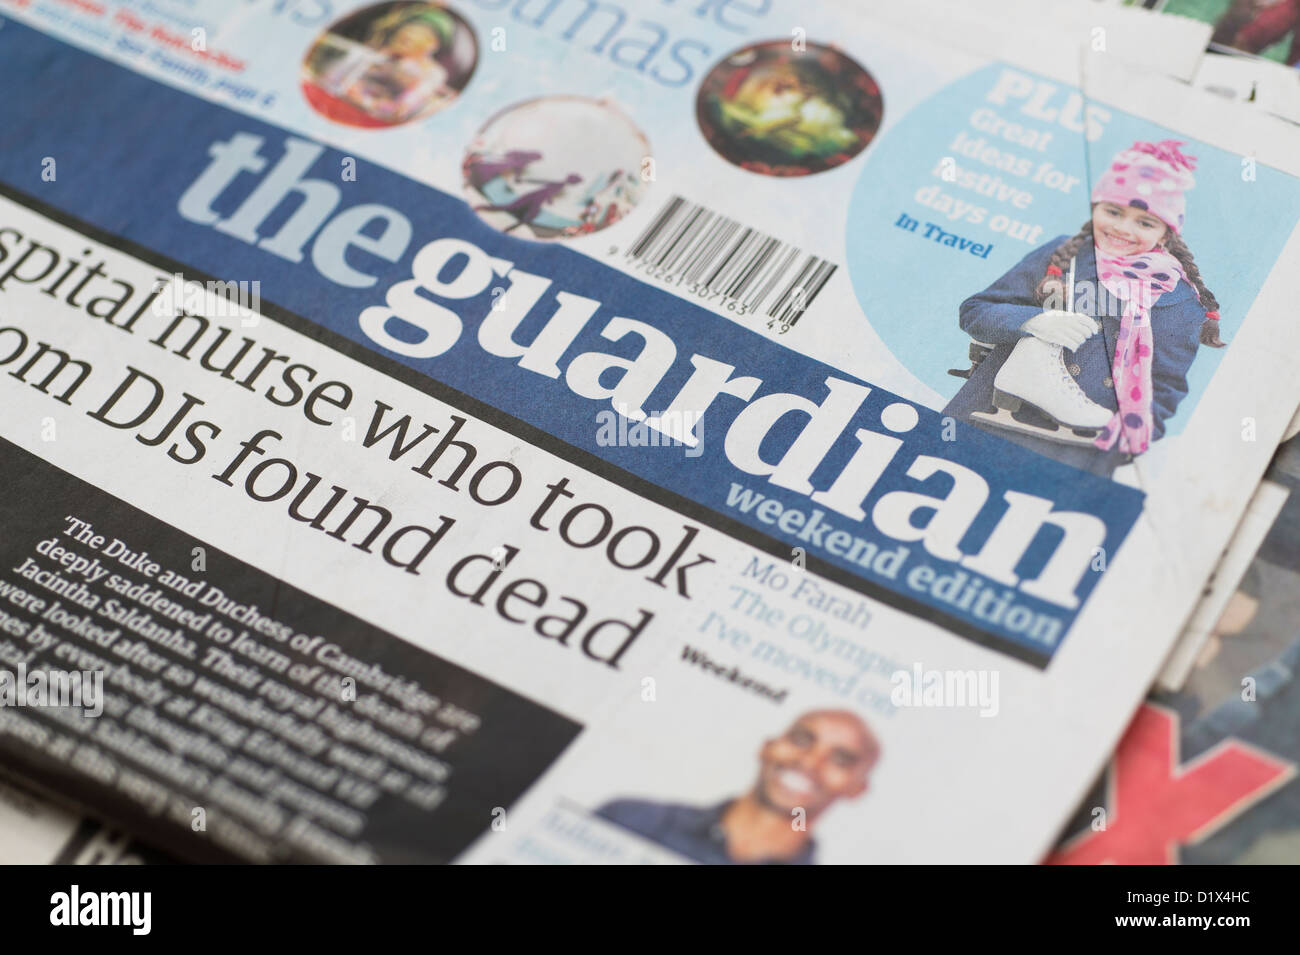 The front pages and mastheads of UK British English daily national newspaper The Guardian - Stock Image